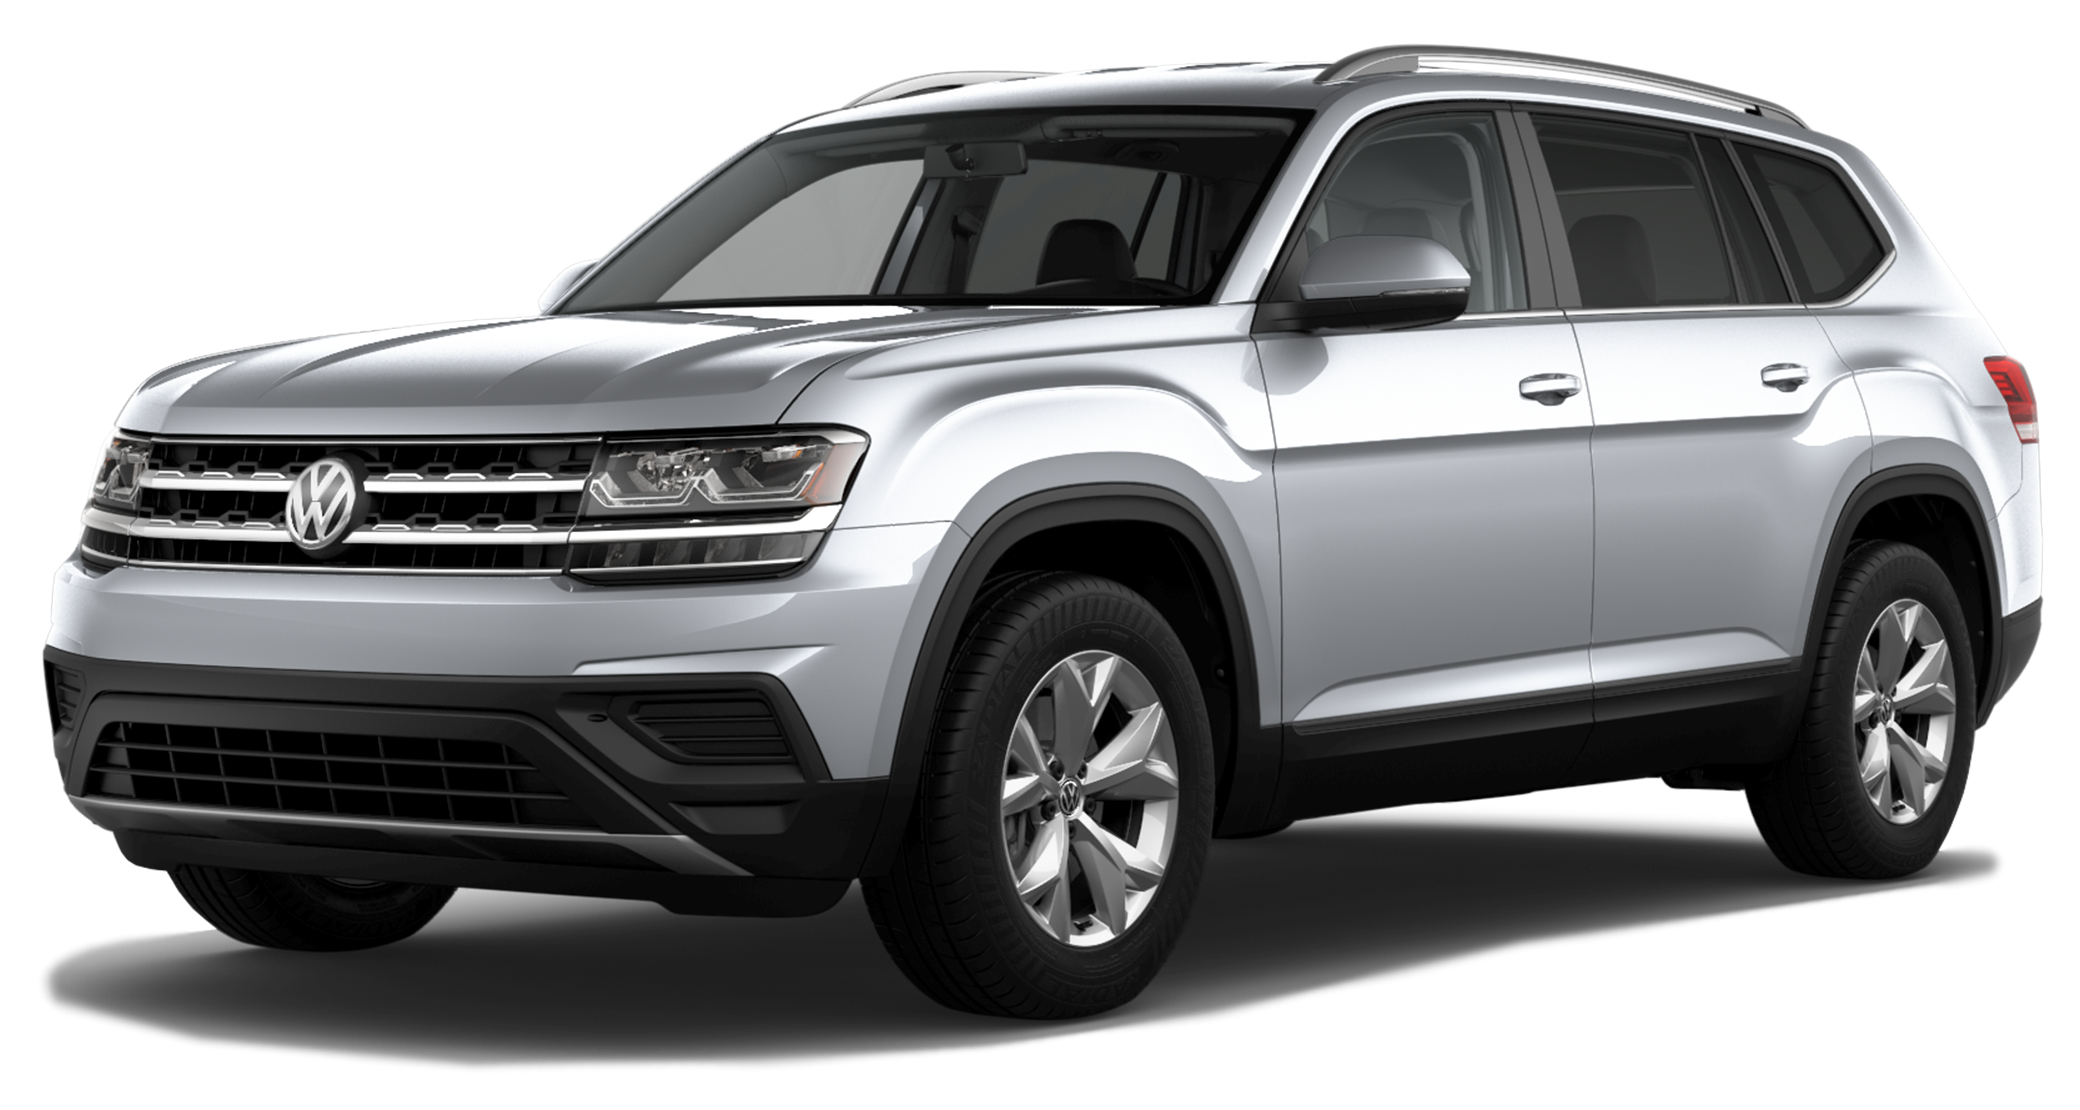 Review & Compare Volkswagen Atlas at Larry H. Miller Volkswagen Lakewood